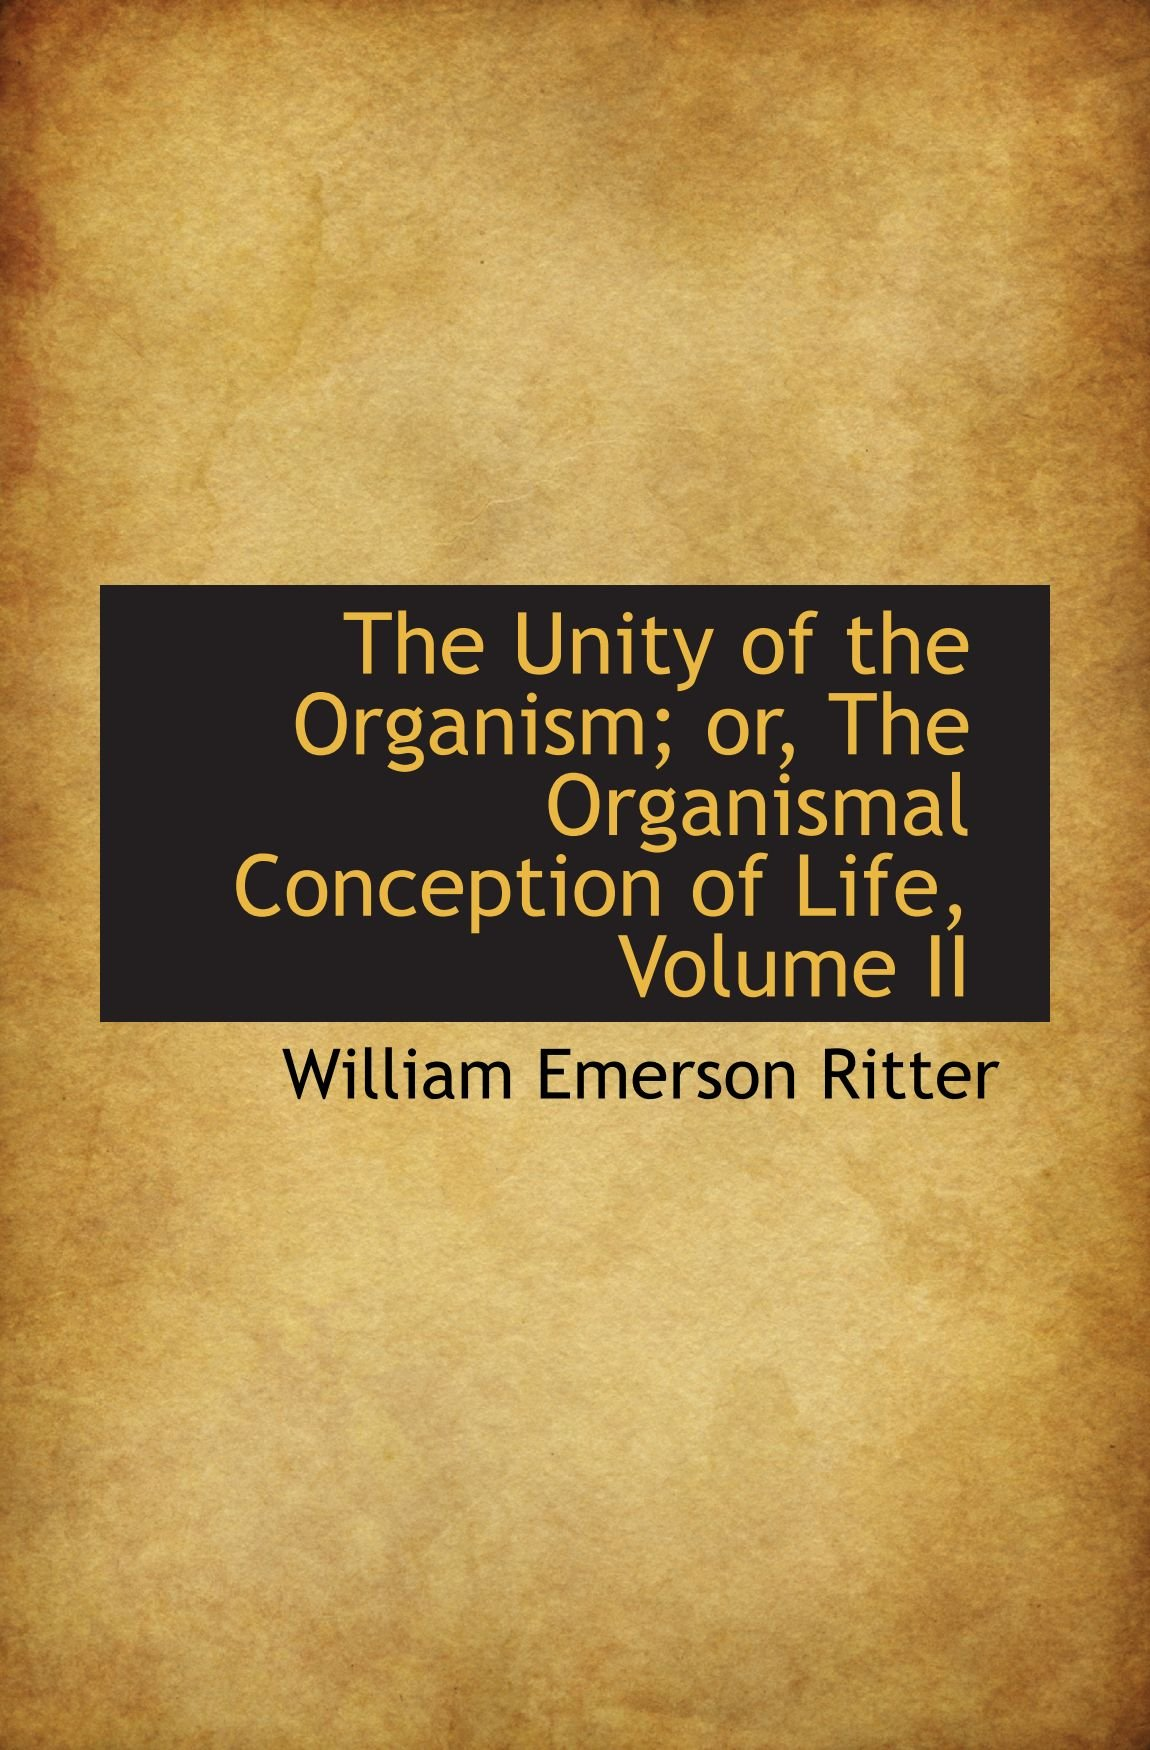 The Unity of the Organism; or, The Organismal Conception of Life, Volume II PDF